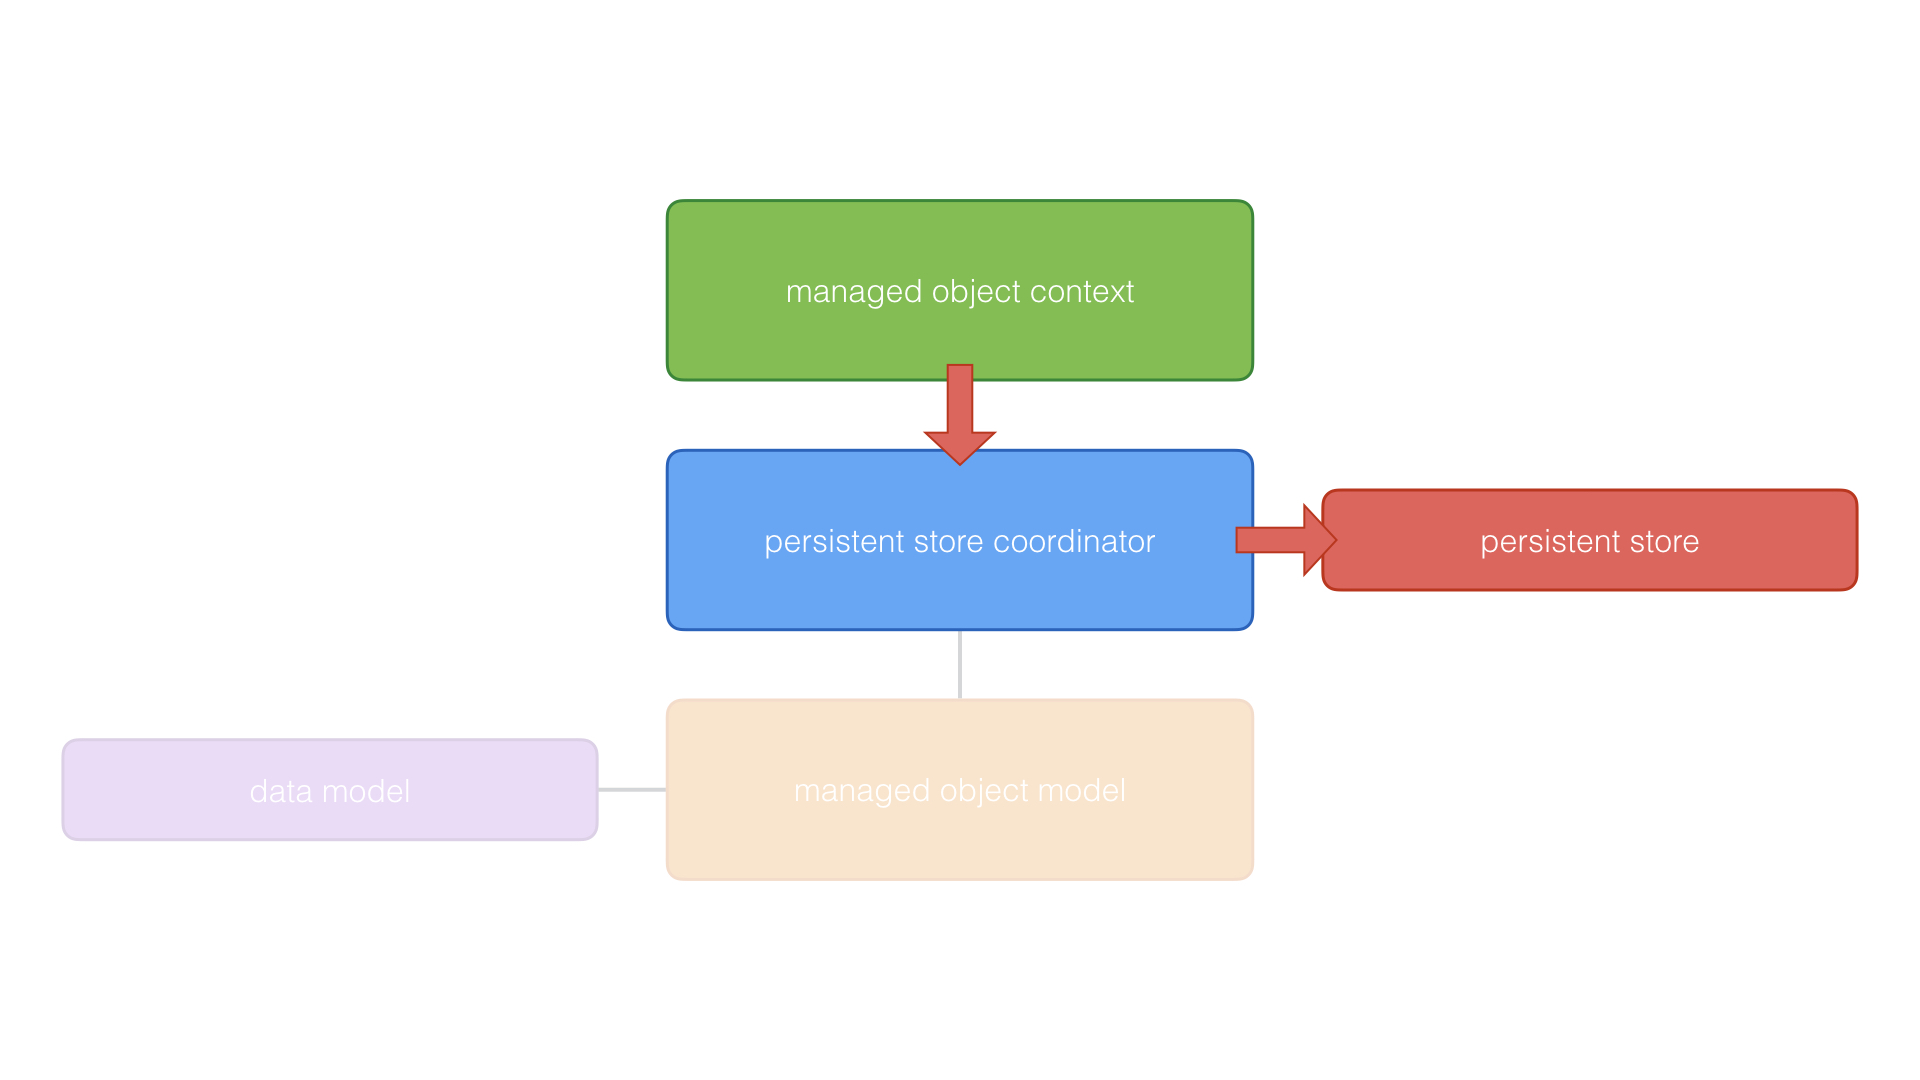 The managed object context pushes changes to the persistent store coordinator, which sends them to the persistent store.